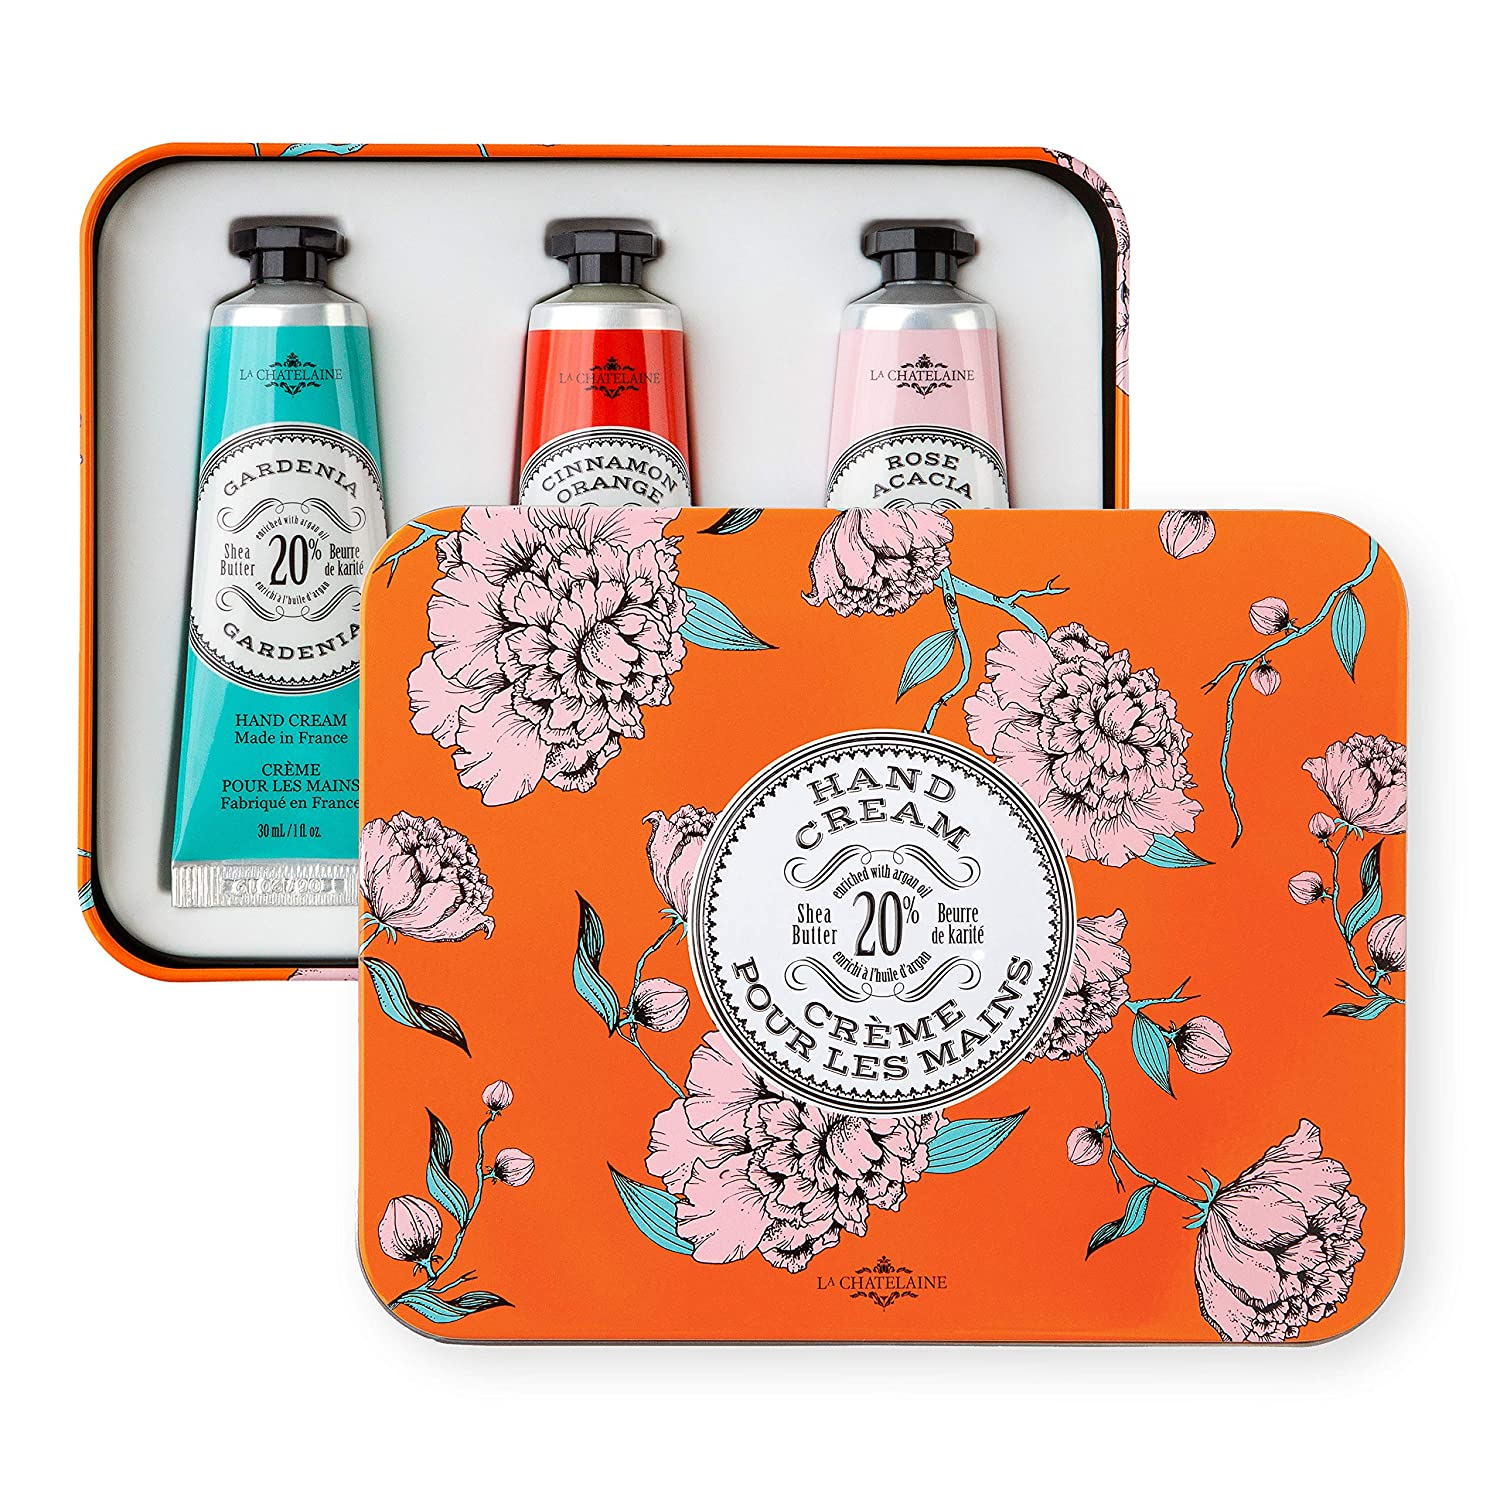 La Chatelaine Deluxe Hand Cream Orange Collection, Set of 3 x 1 Oz: Plant-Based, Made in France with 20% Organic Shea Butter & Organic Argan Oil, featuring Cinnamon Orange, Gardenia, Rose Acacia